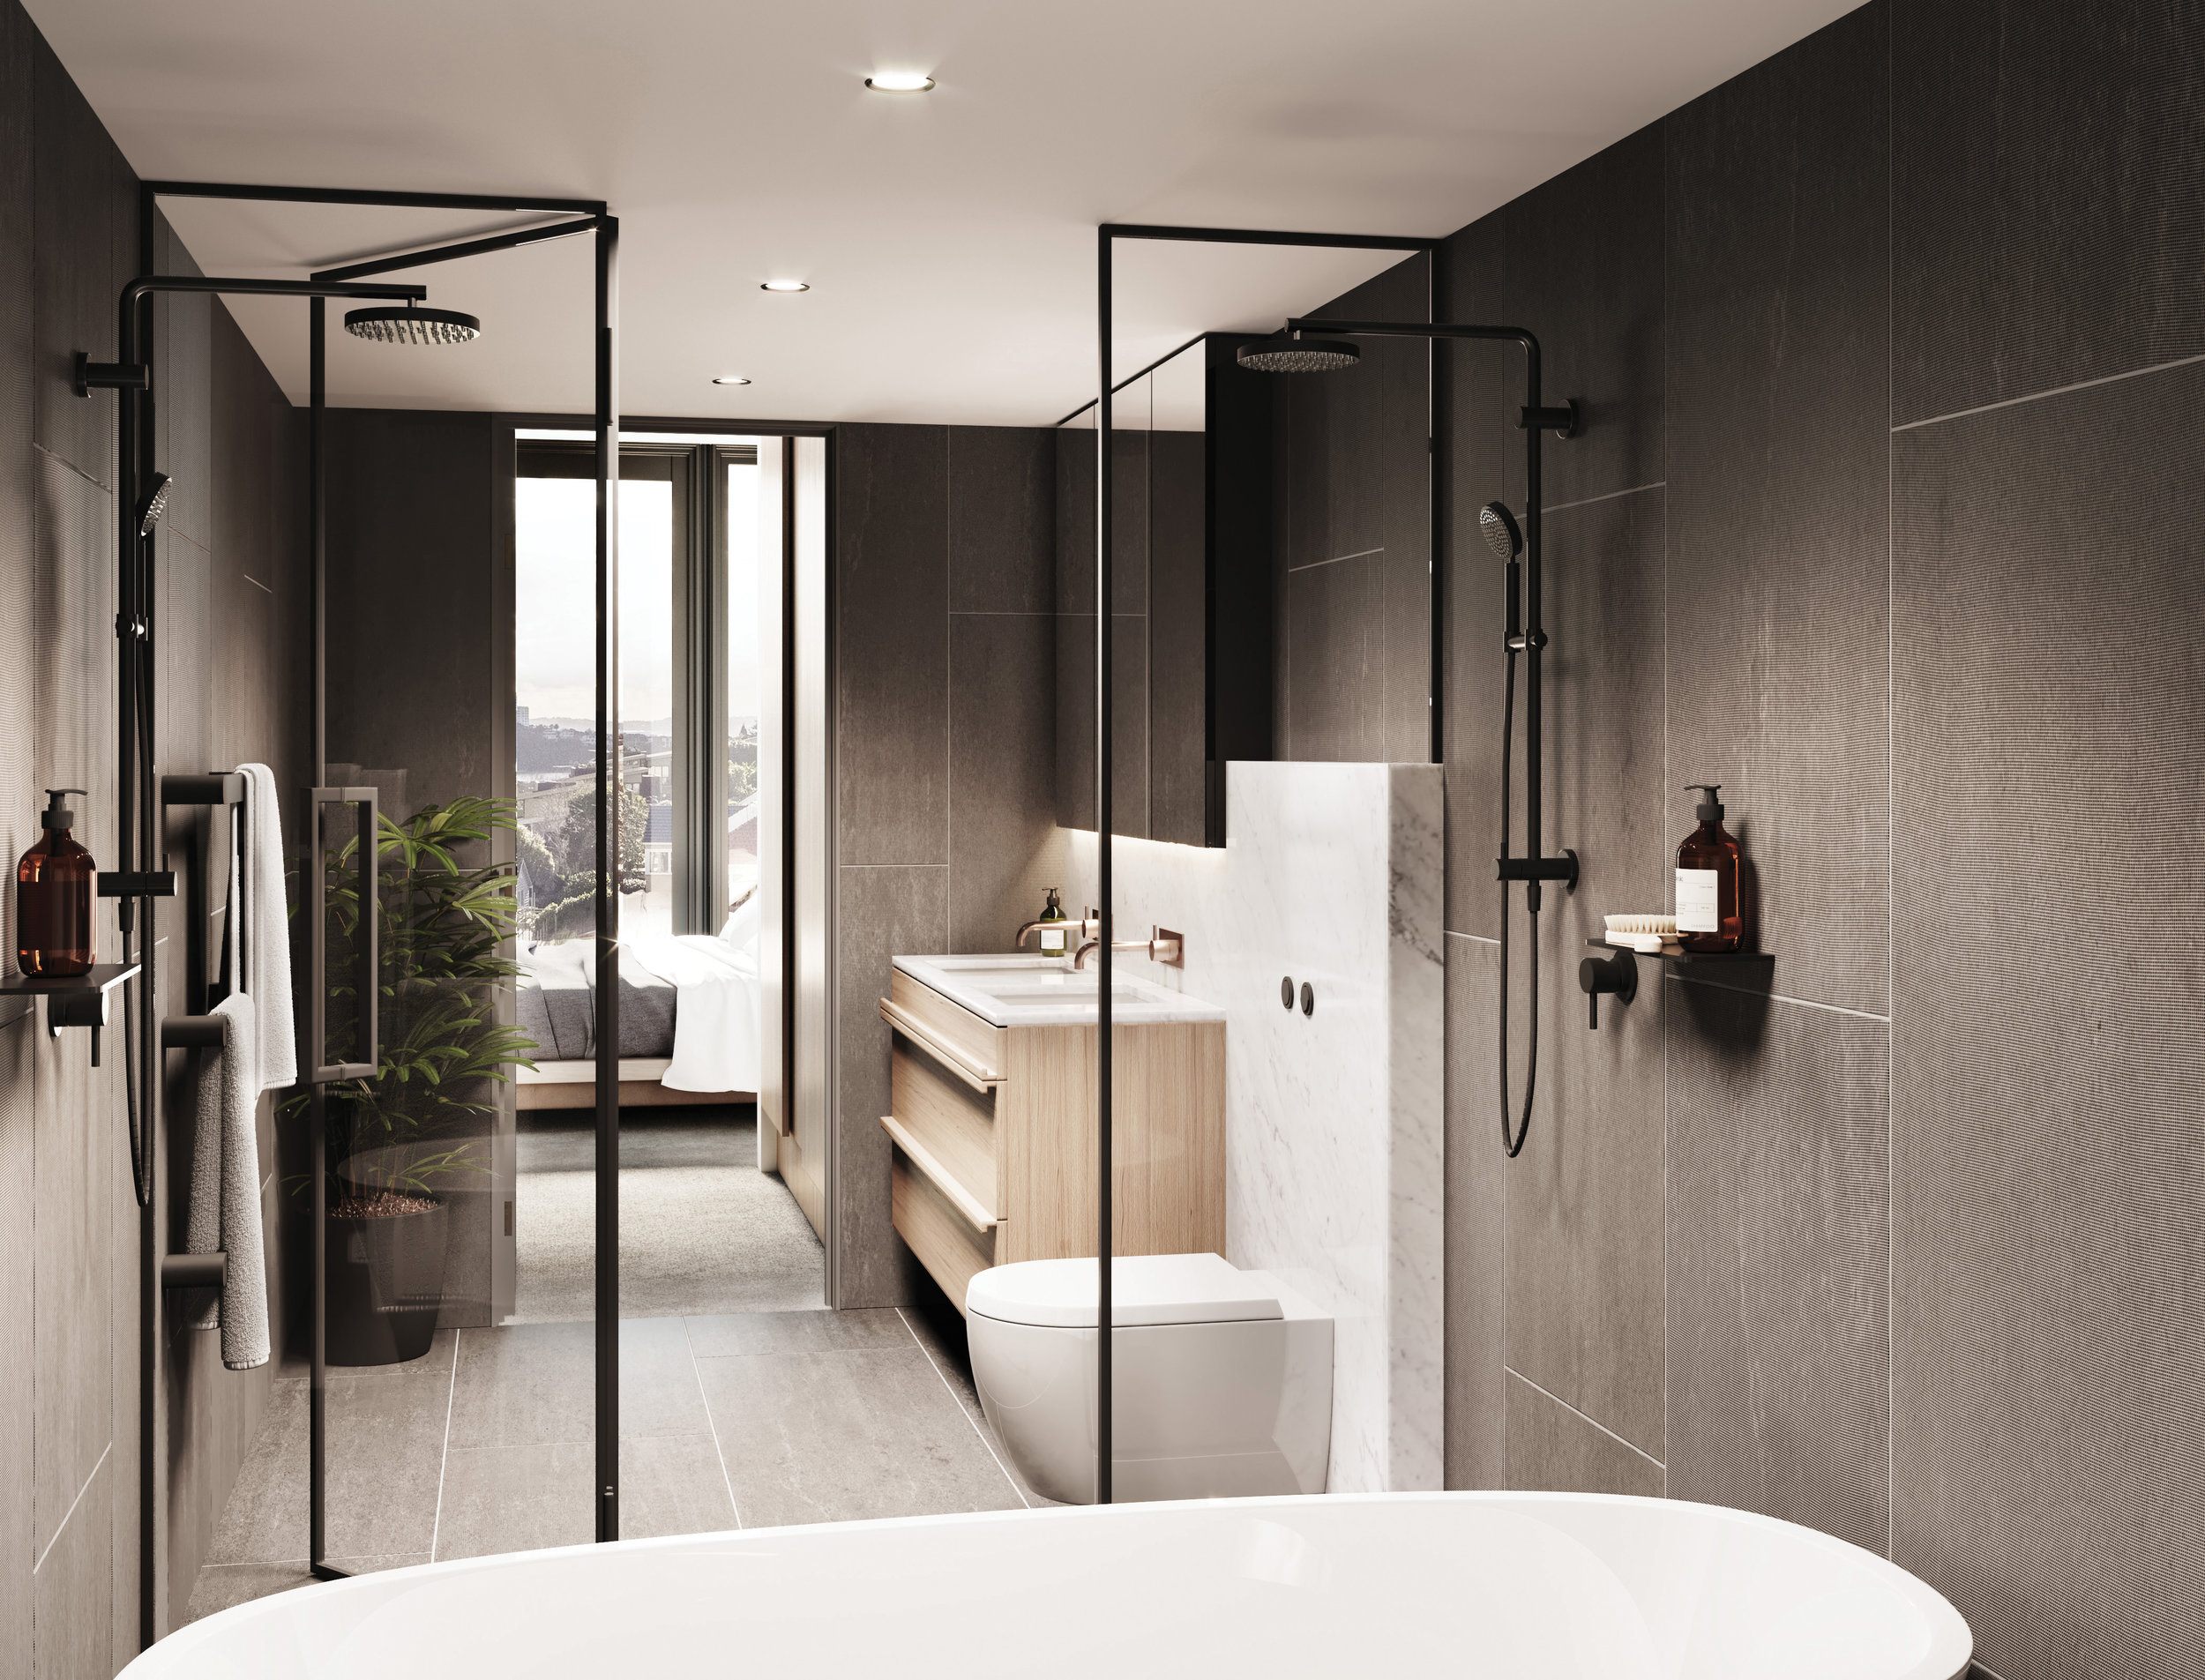 The ensuites in the upper residences are accessed through a walk-in wardrobe, and include a wall-mounted toilet, mirror cabinet and custom double vanity on a feature stone plinth. This plinth extends into the wet area which contains two showers and a luxurious freestanding bath.